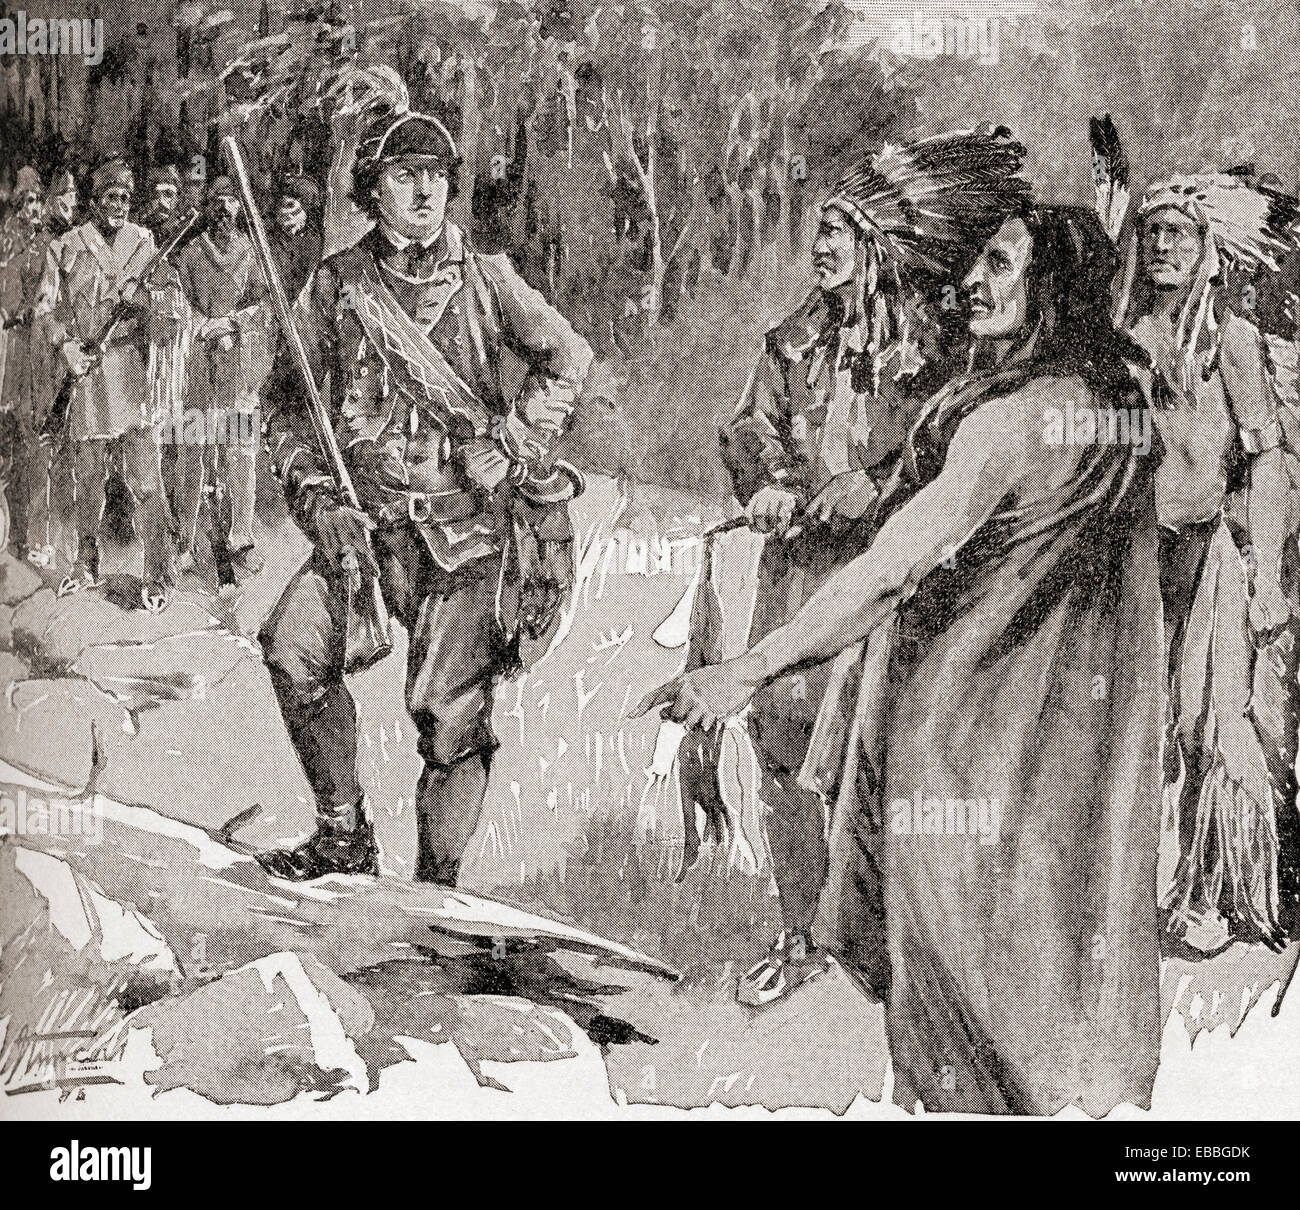 The meeting between Major Rogers and Chief Pontiac in 1760. - Stock Image